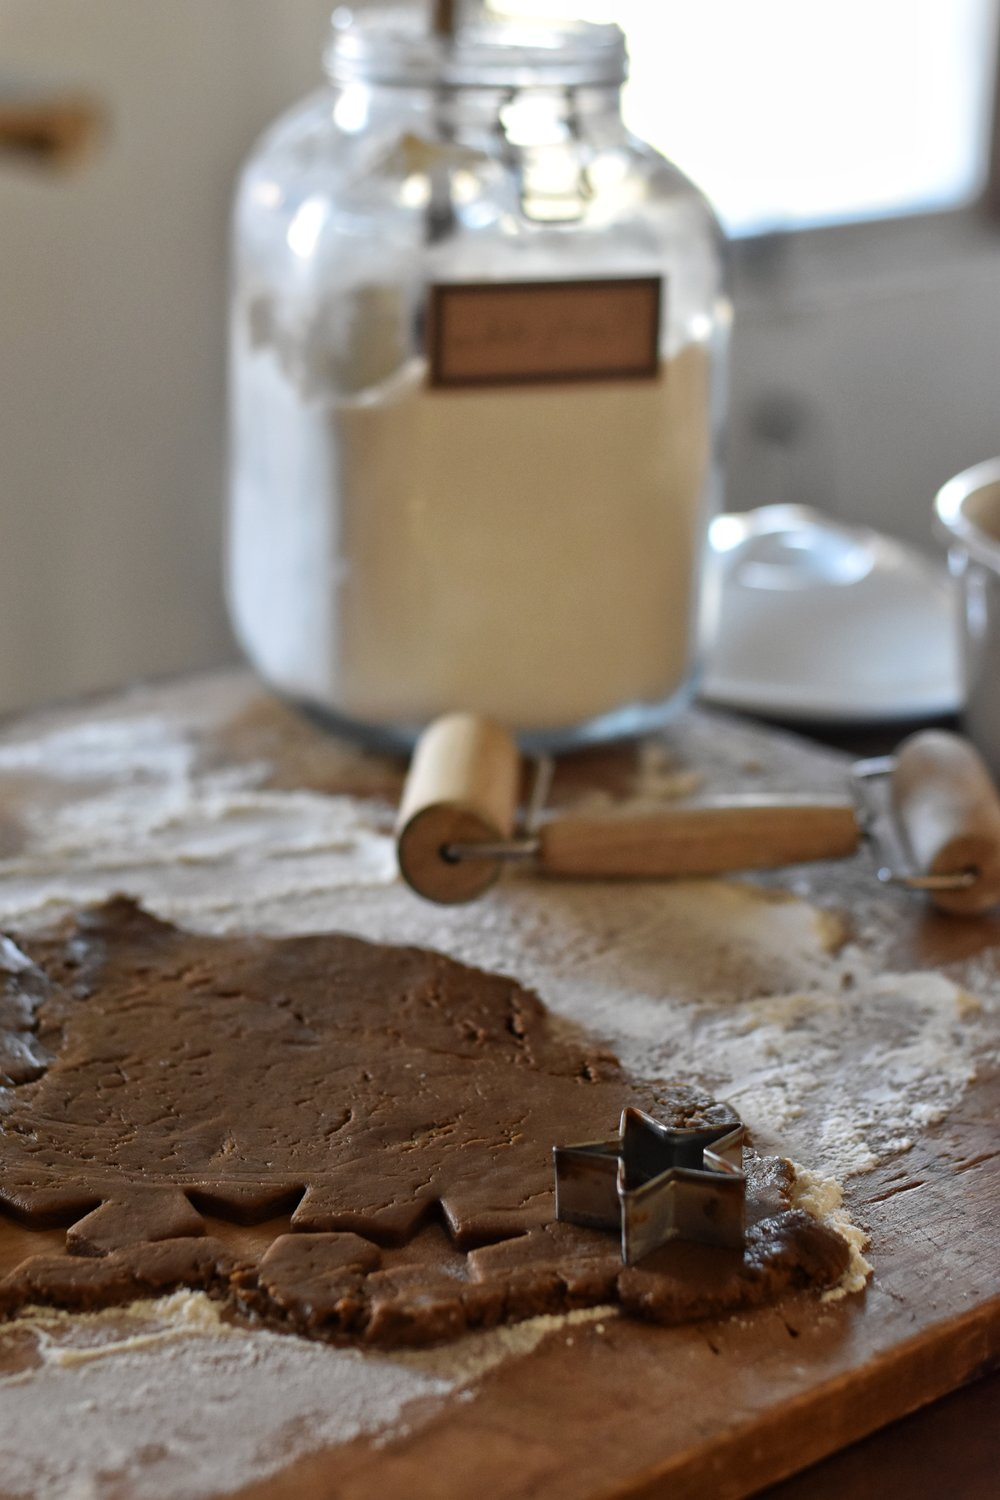 Farmhouse, woodland, rustic style Christmas home and tips on how you can create a cozy living atmosphere in the month of December. Homemade Gingerbread men. Tasha Tudor recipe